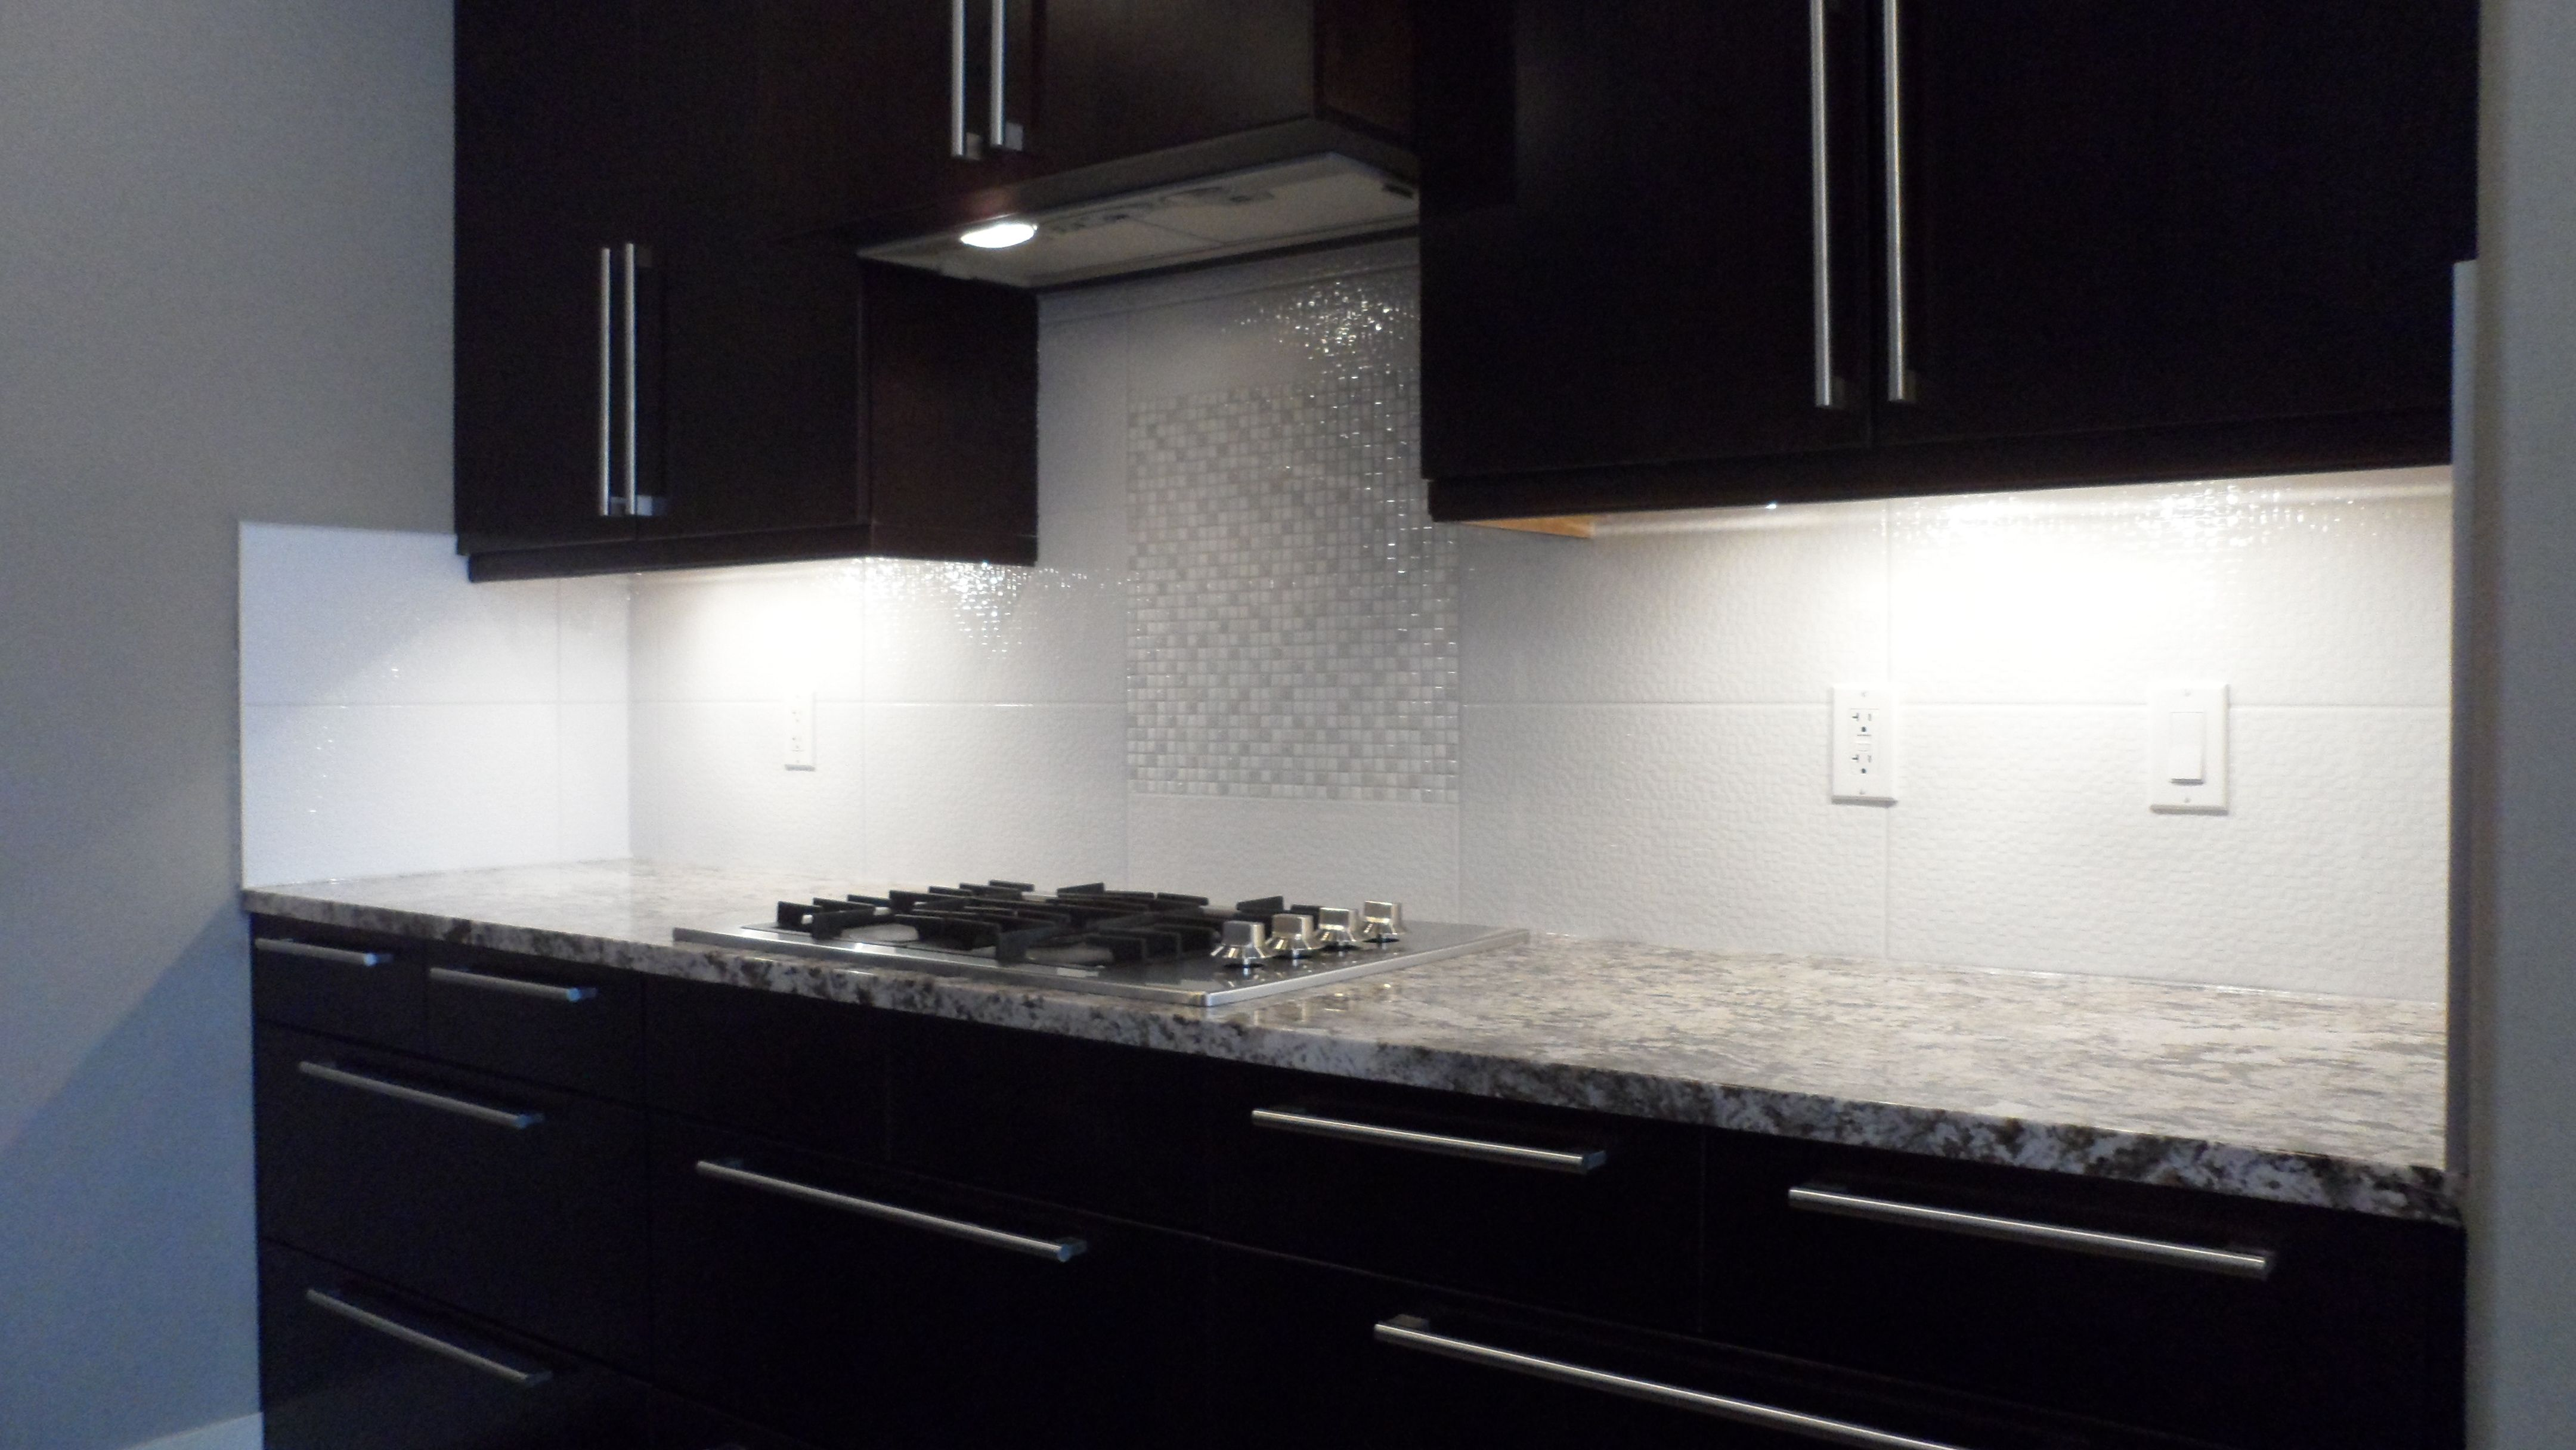 Textured Whitecream Color Ceramic Wall Tile With Matching Ceramic